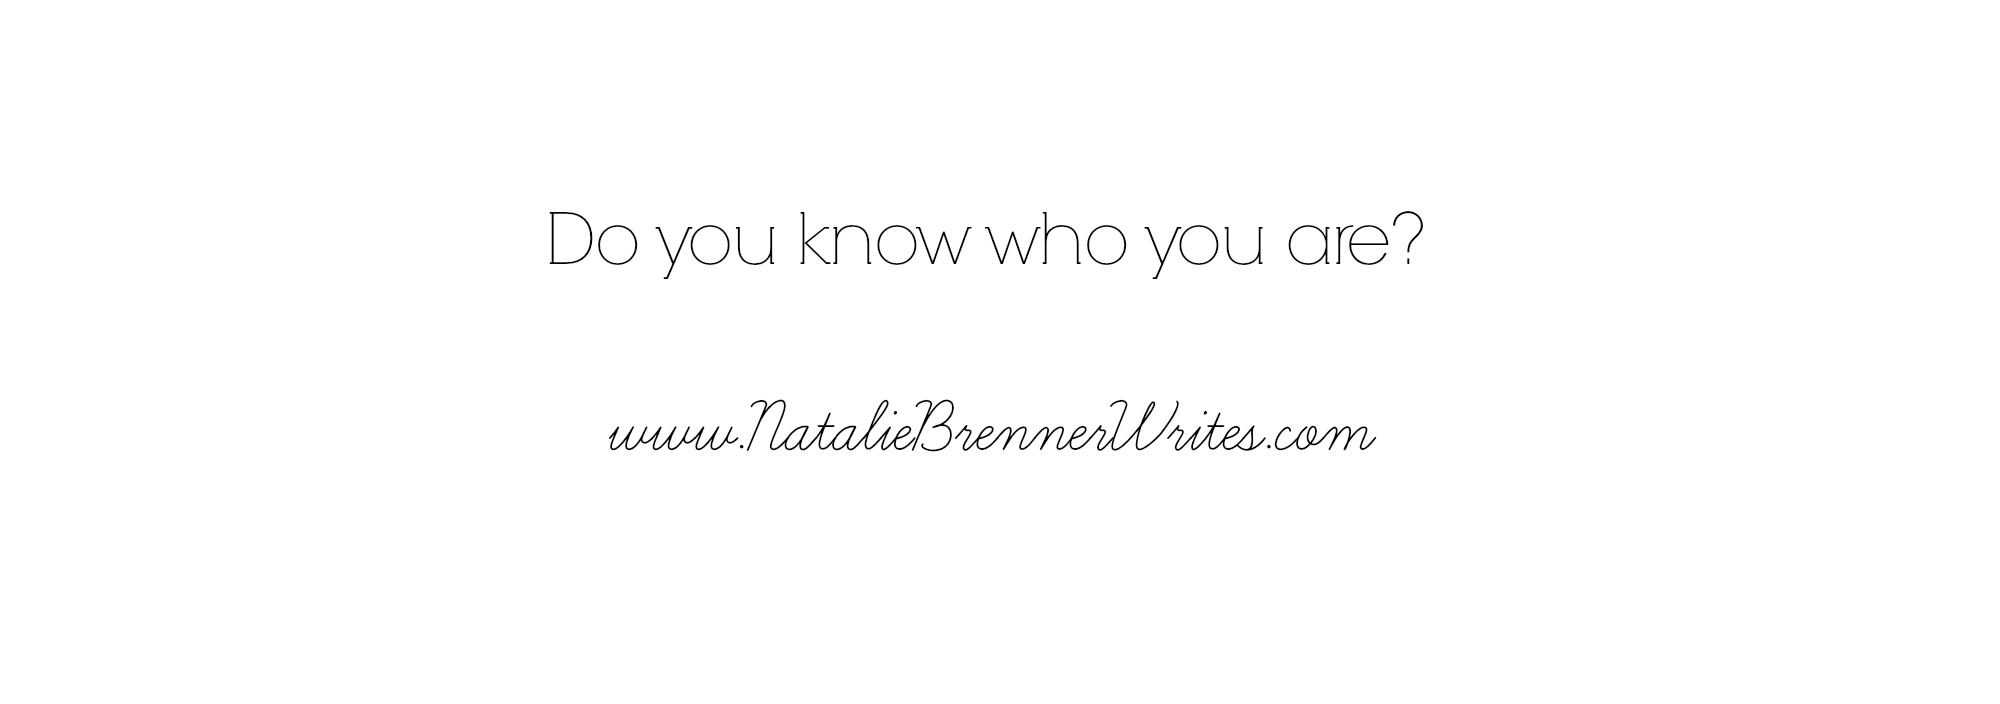 do you know who you are